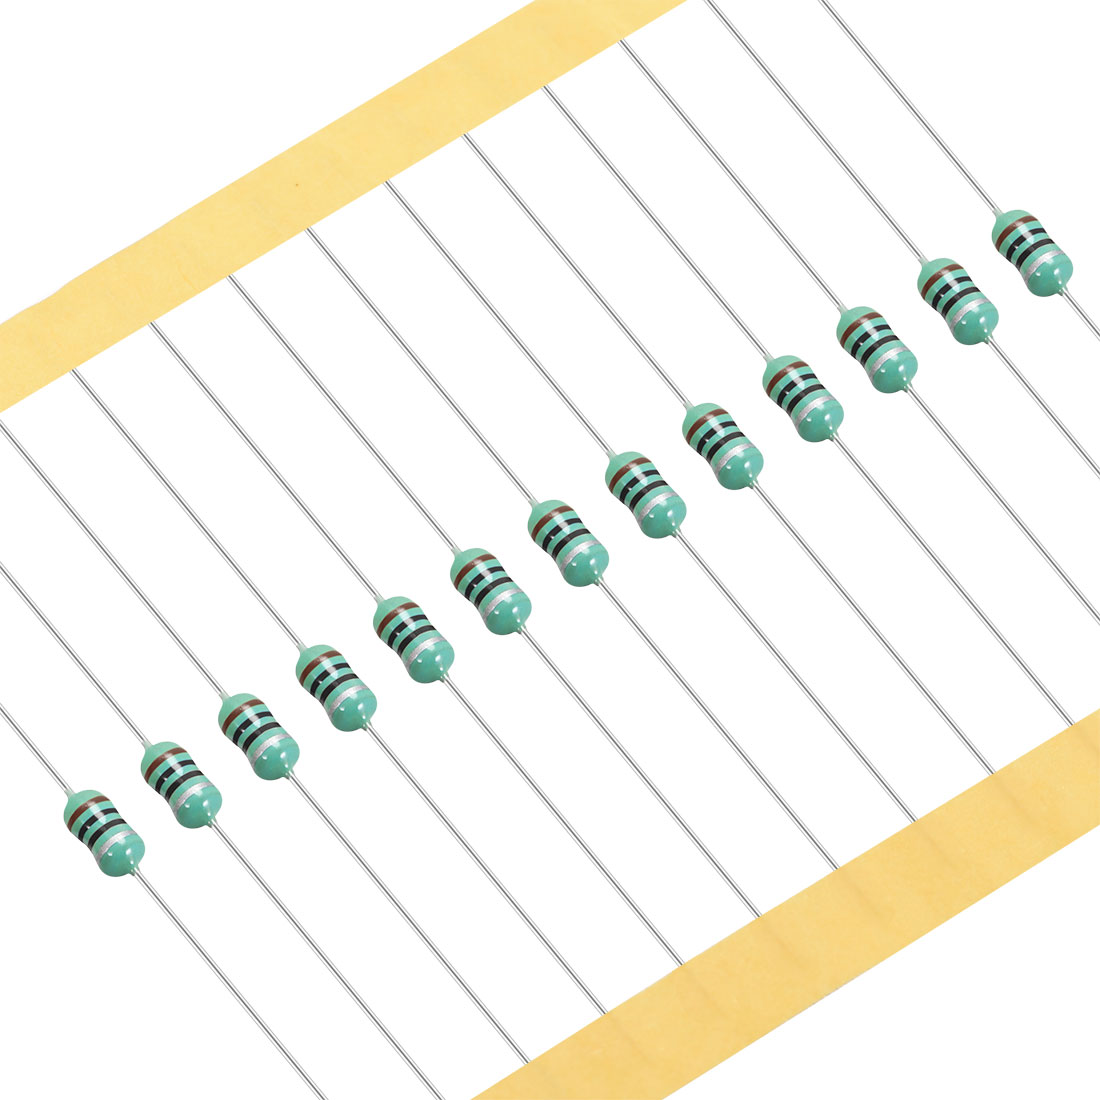 25Pcs 0307 Color Ring Inductor 10uH 0.5W Axial RF Choke Coil Inductor